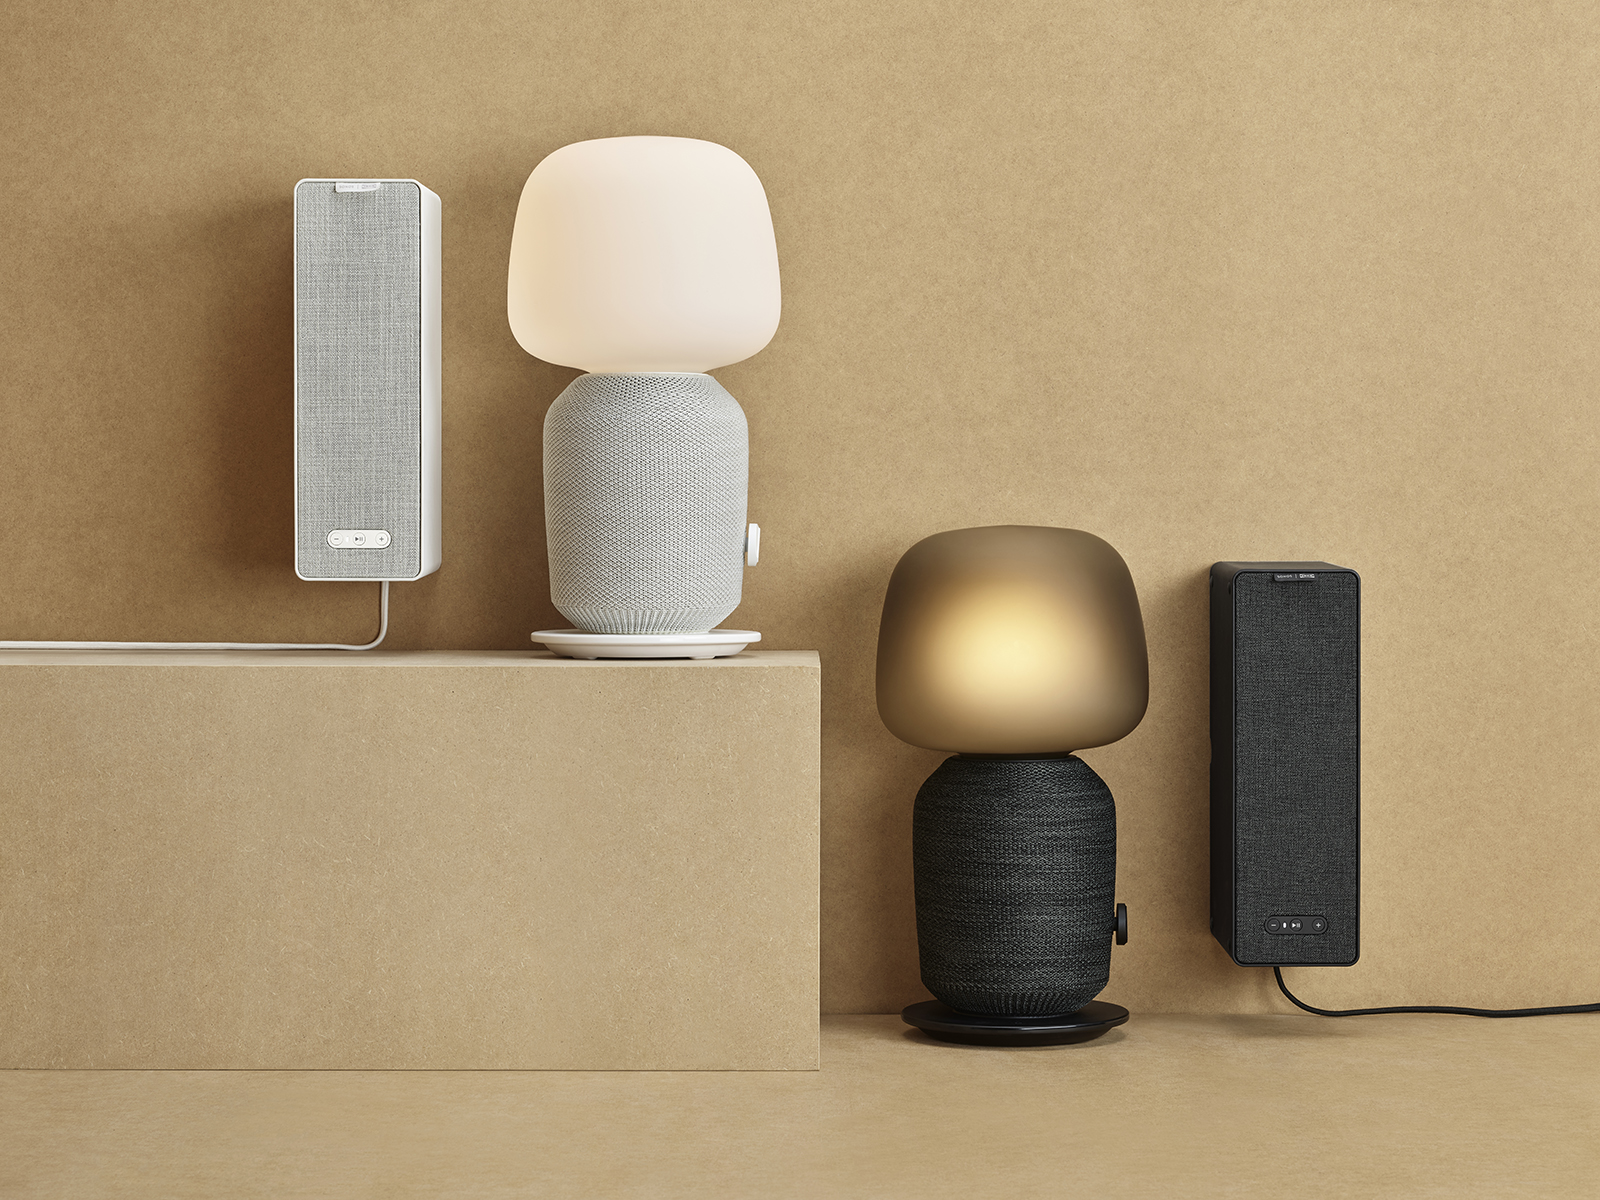 Black and white lamp and speaker